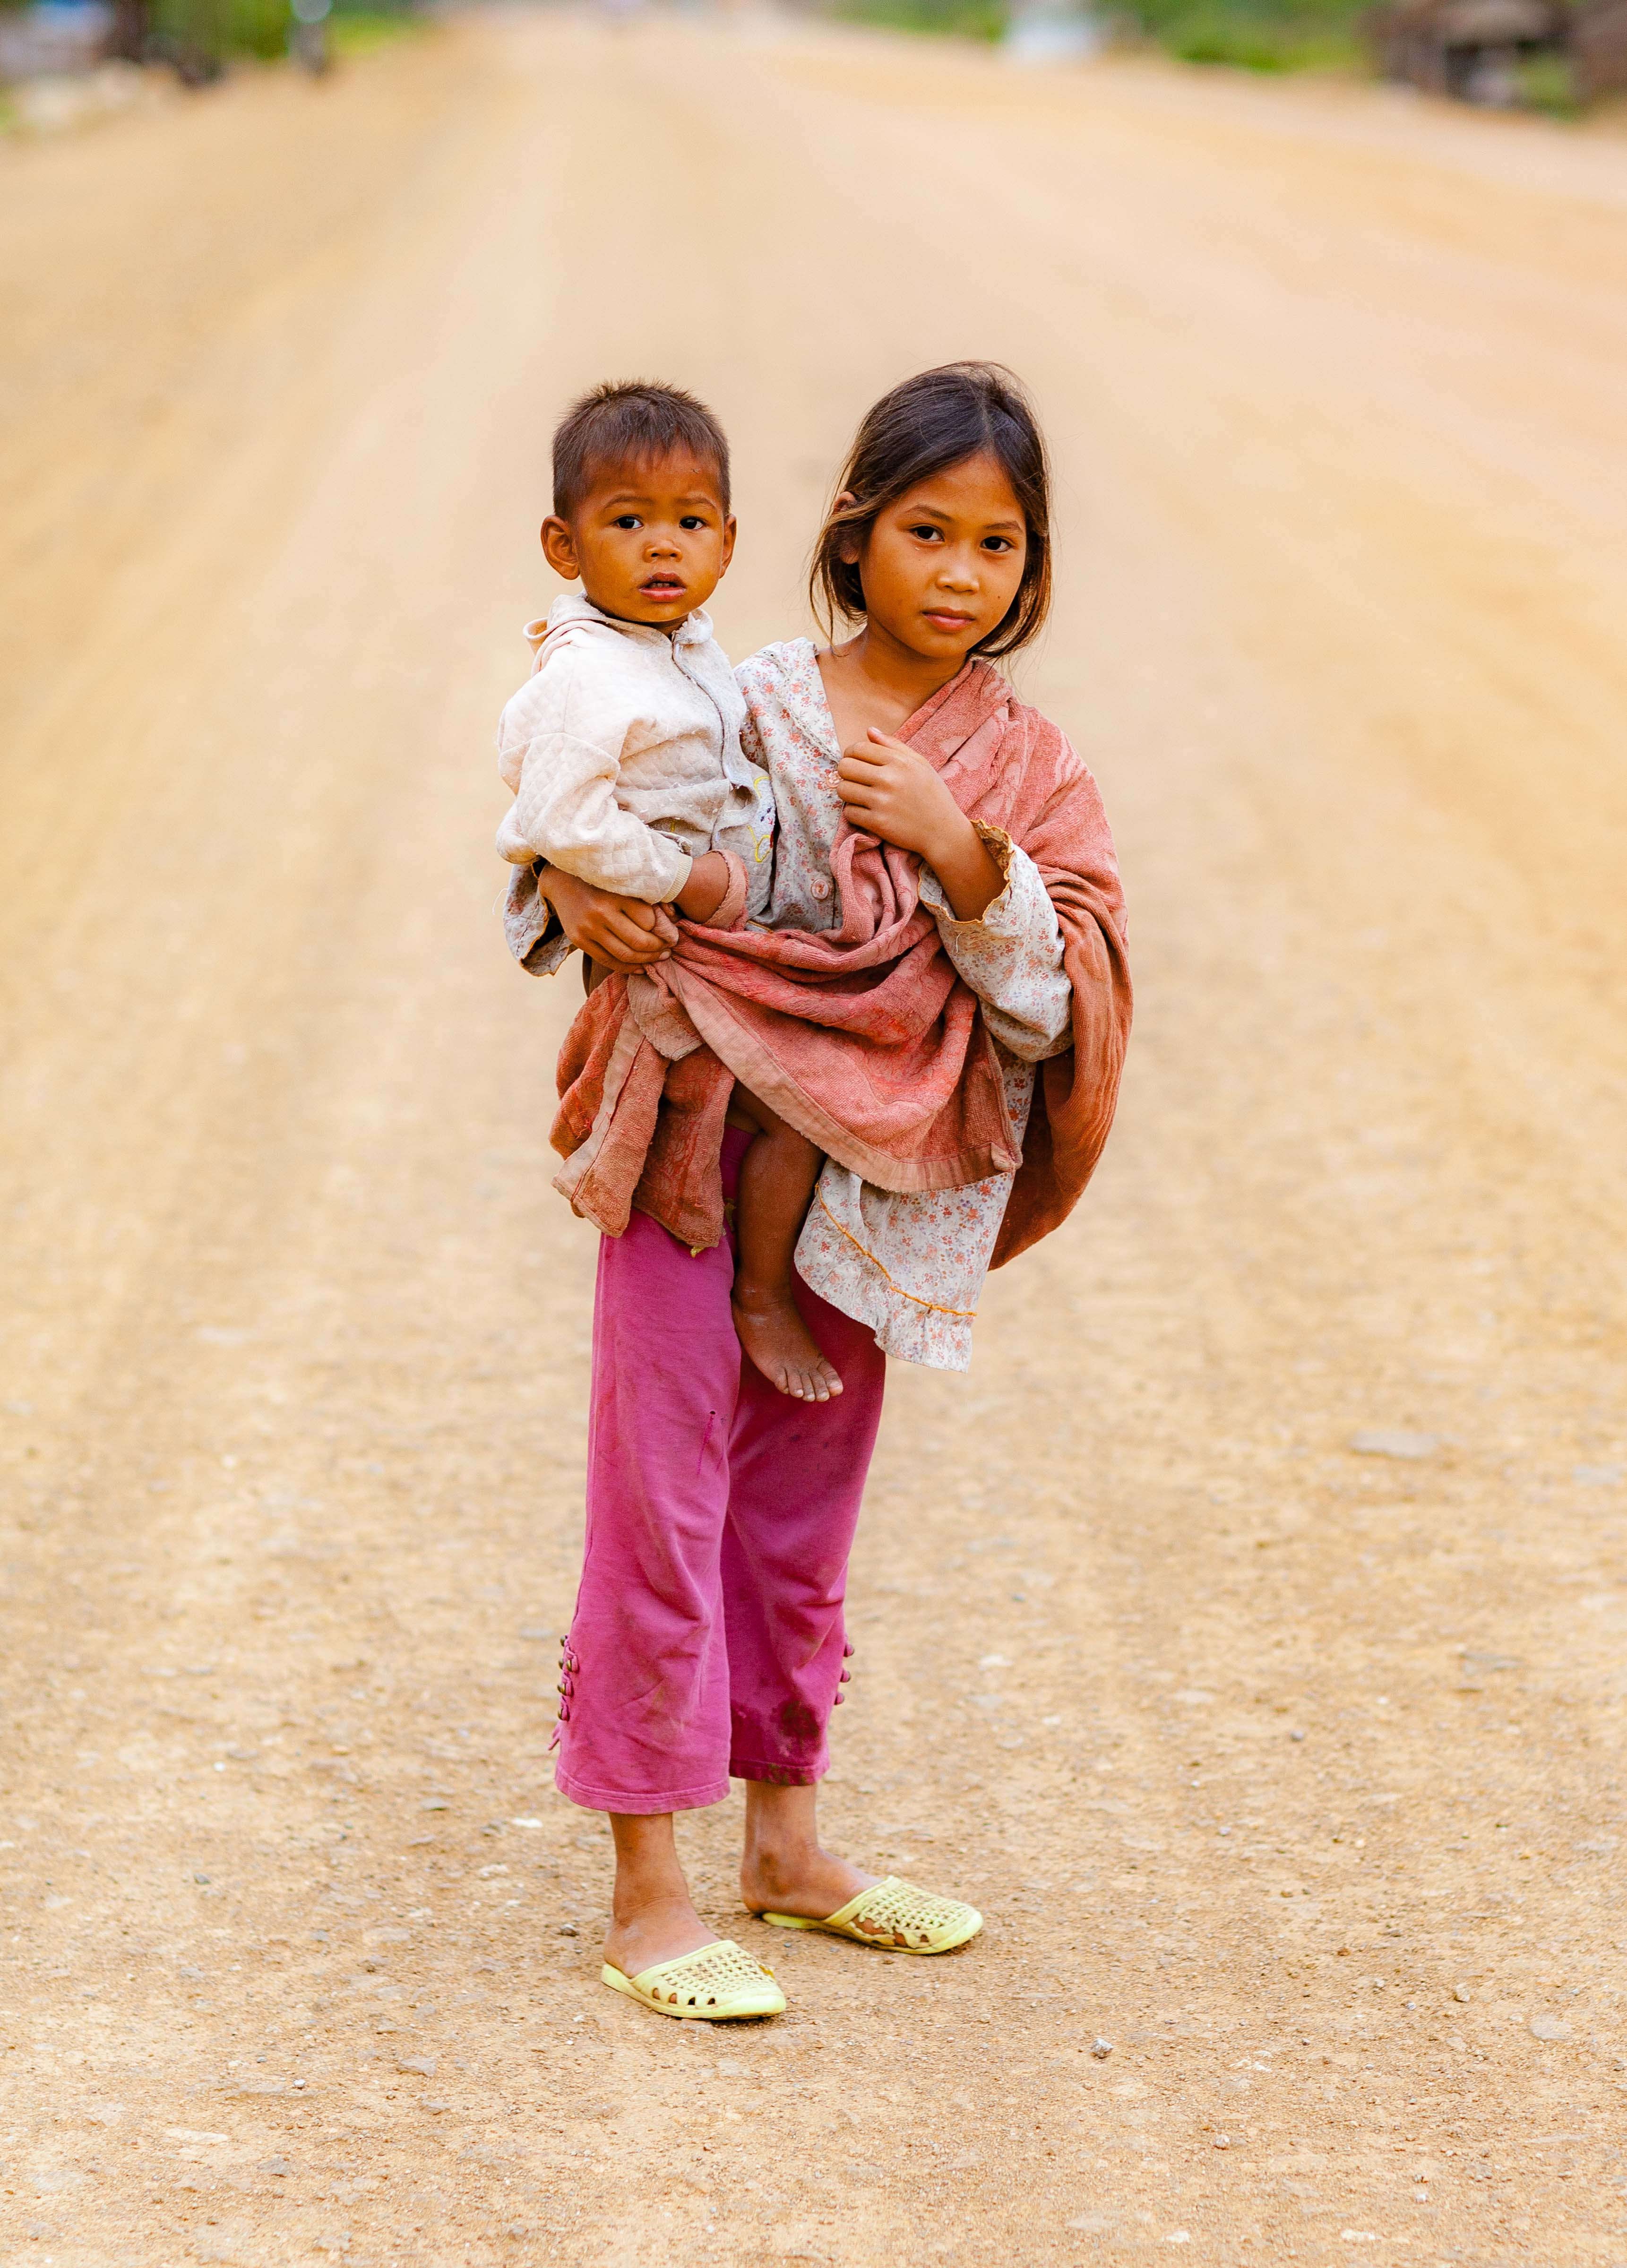 Cambodia, Krong Pailin Prov, Girl And Brother, 2009, IMG 9854